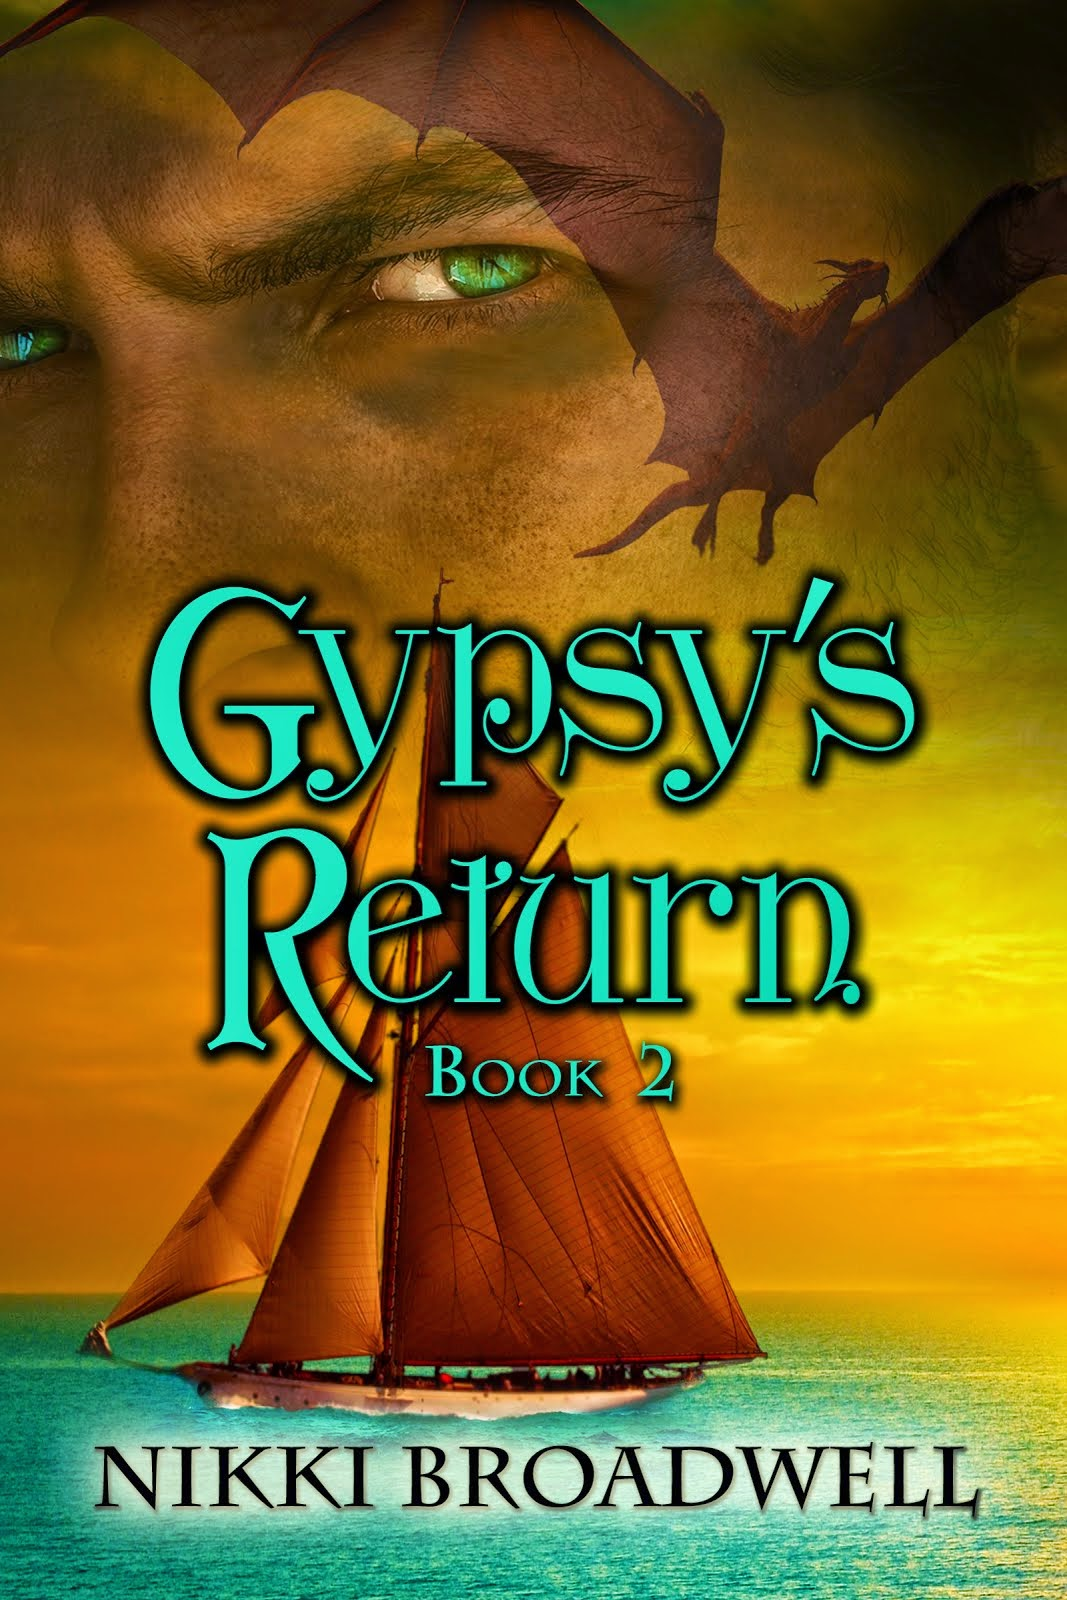 Gypsy's Return